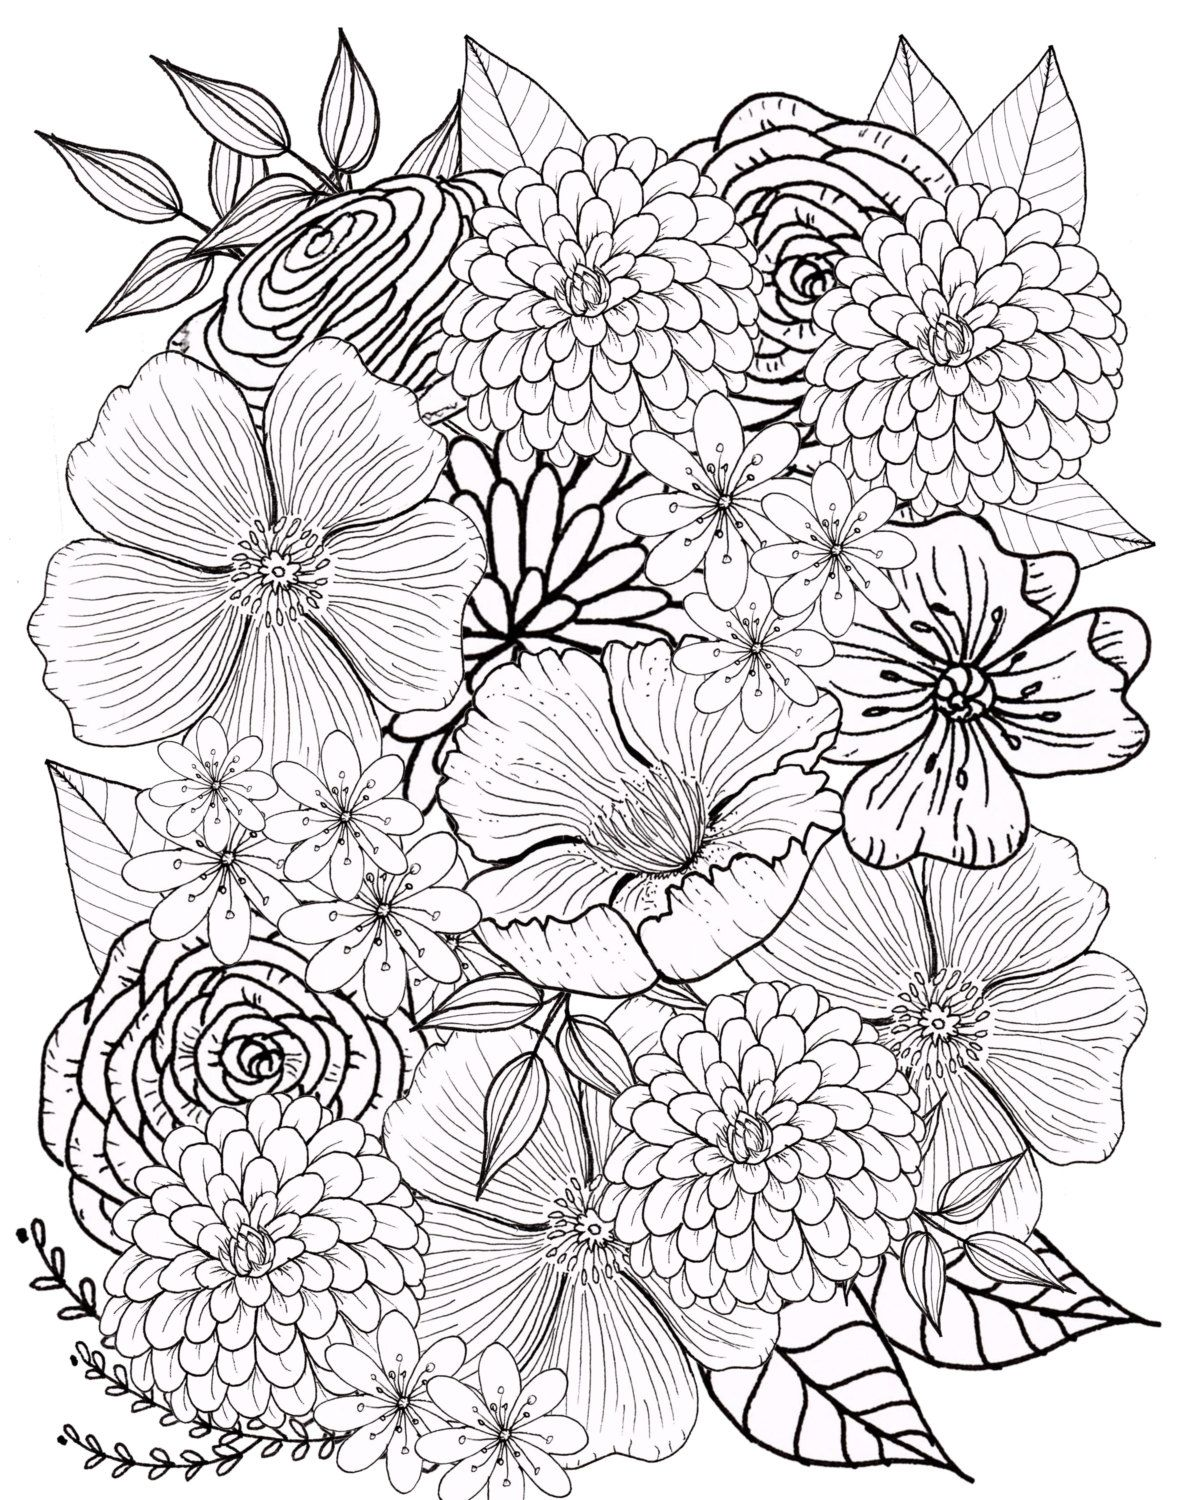 Flower Coloring Page, Floral Coloring Page, Adult Coloring ...